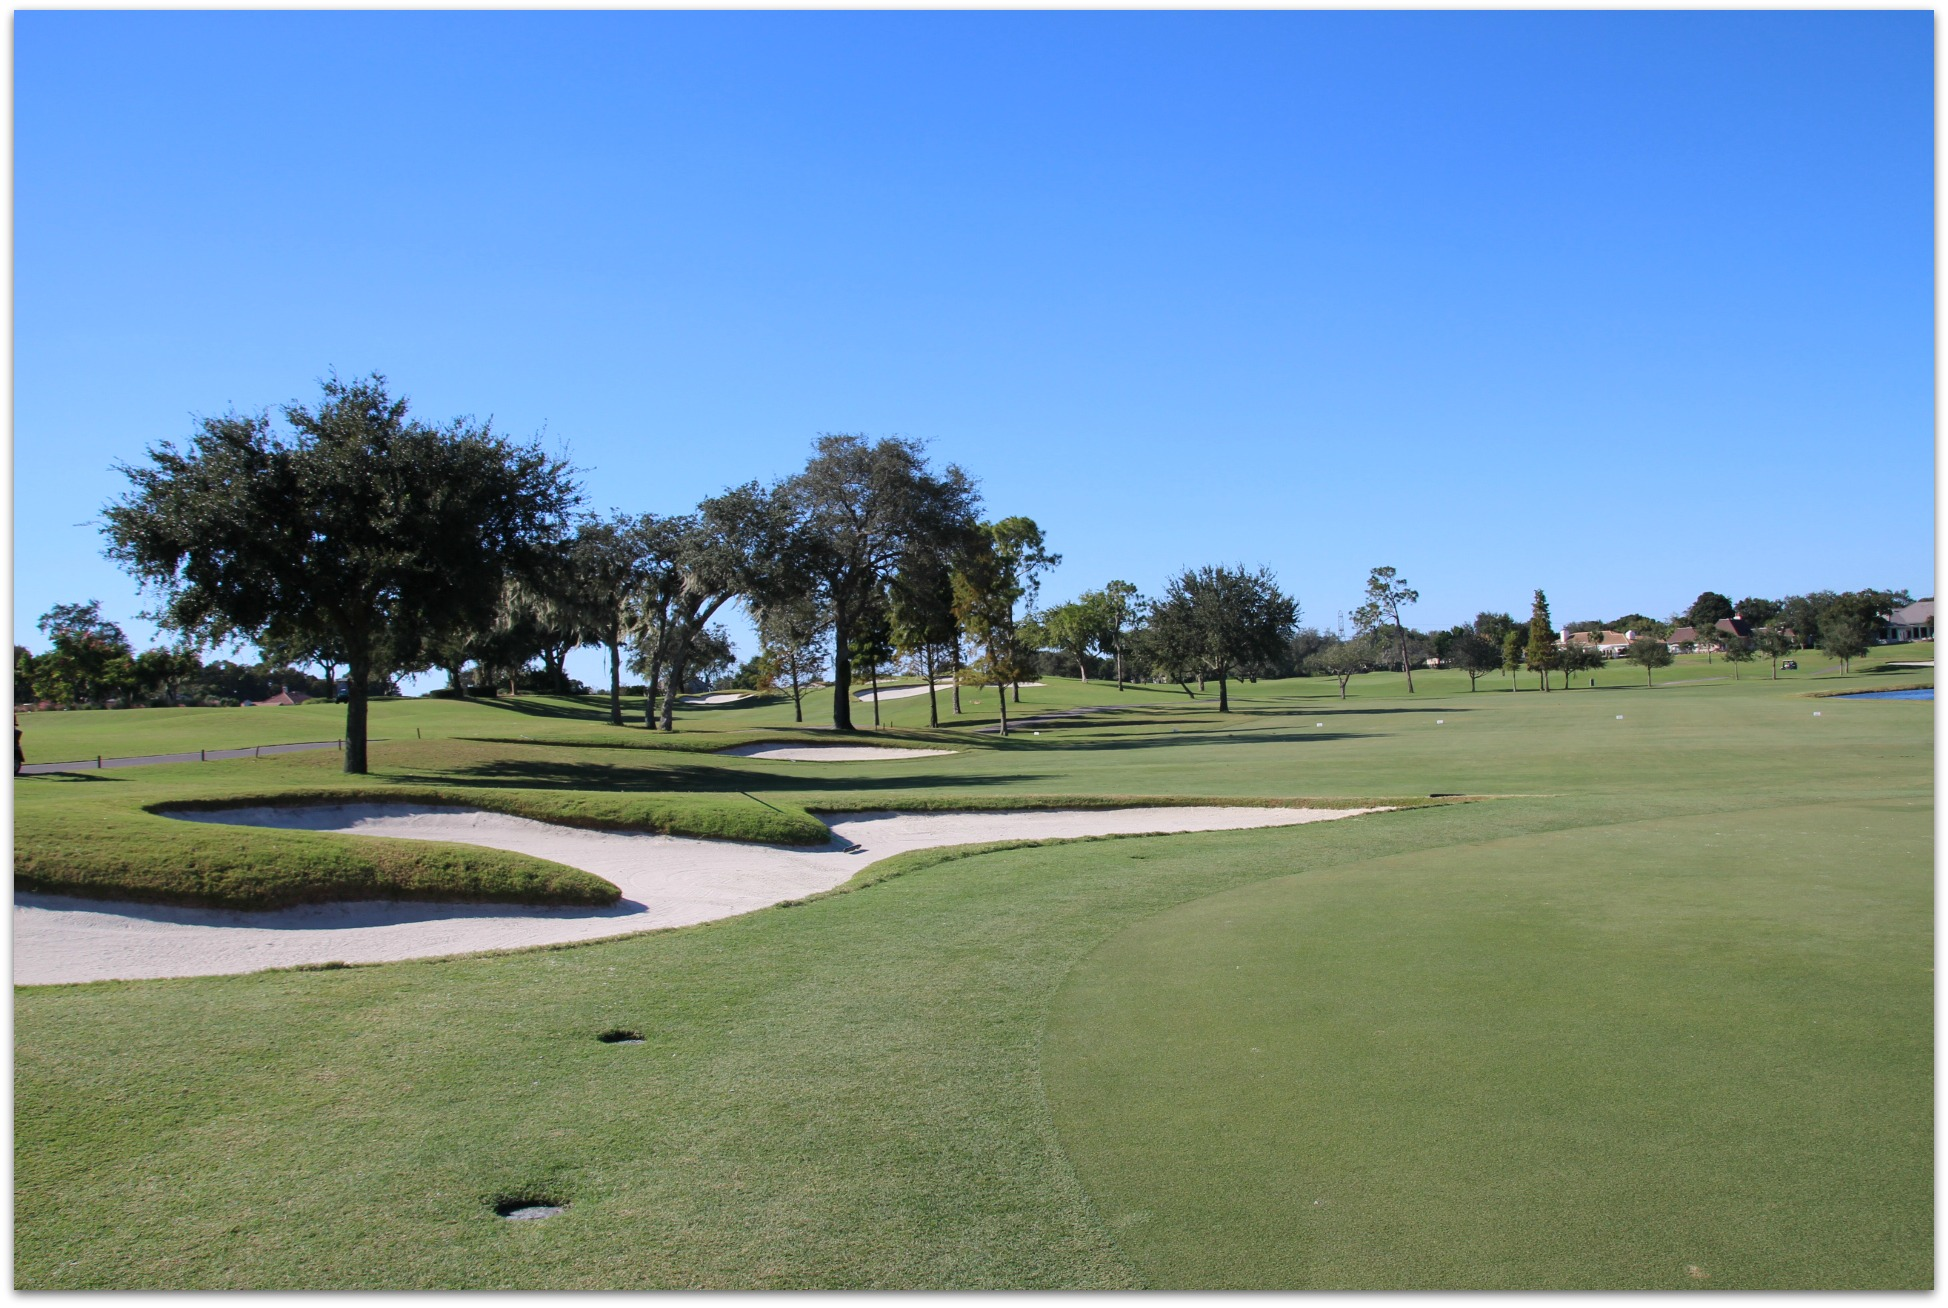 There are a lot of beautiful golf courses in Florida, but you'll absolutely love the golf at Bay Hill.